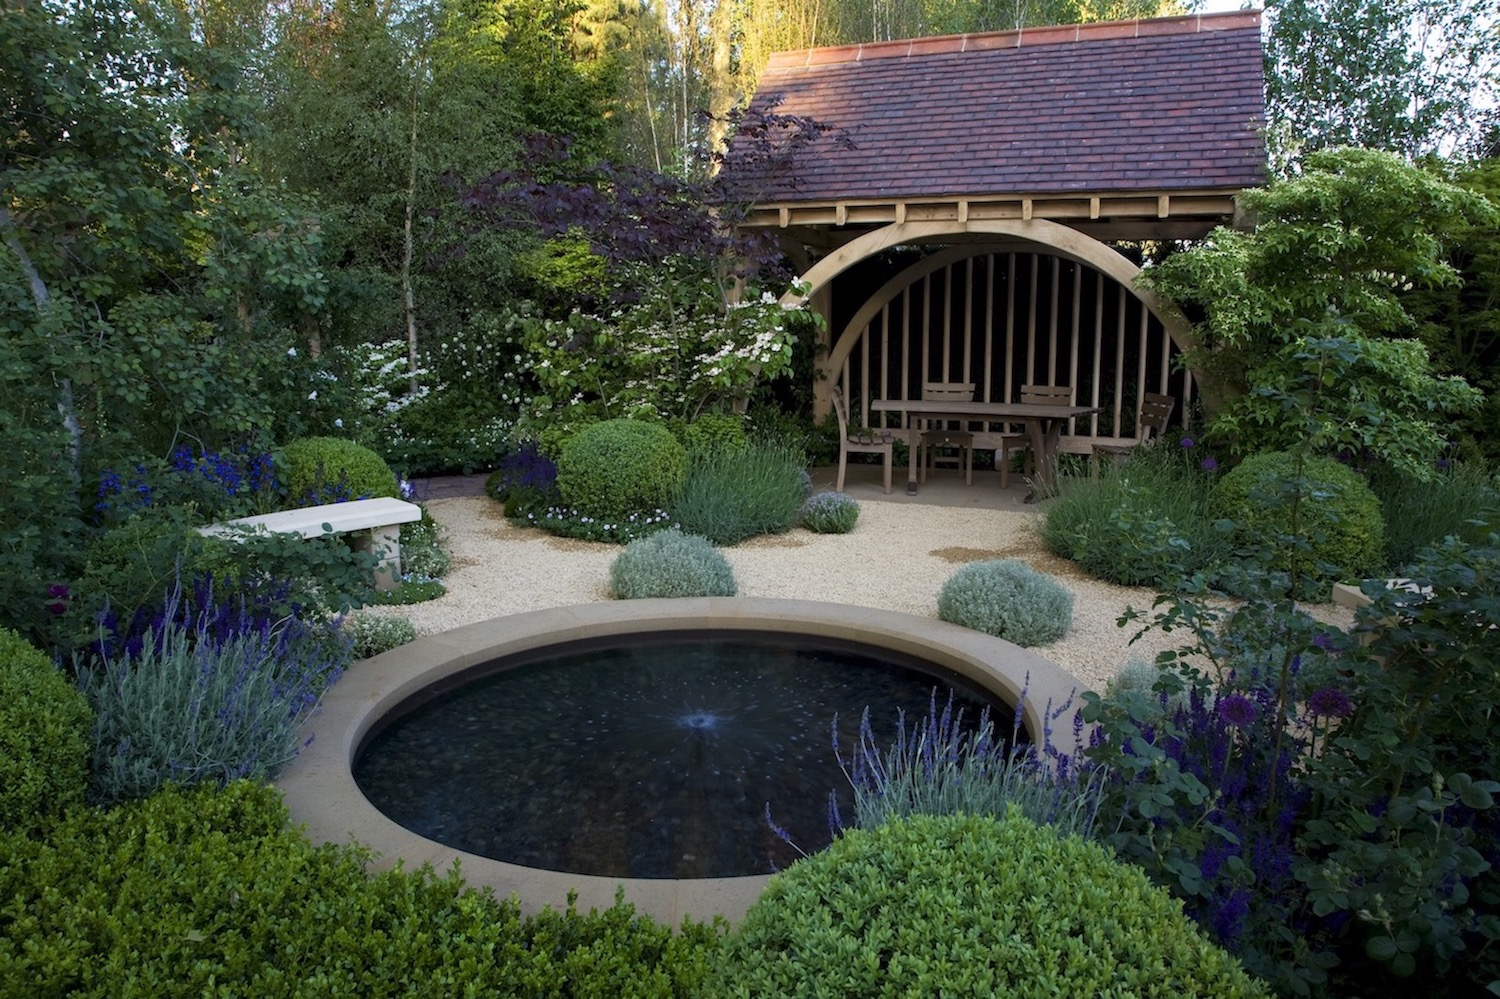 people's choice' goes to m&g garden - roger platts garden design and